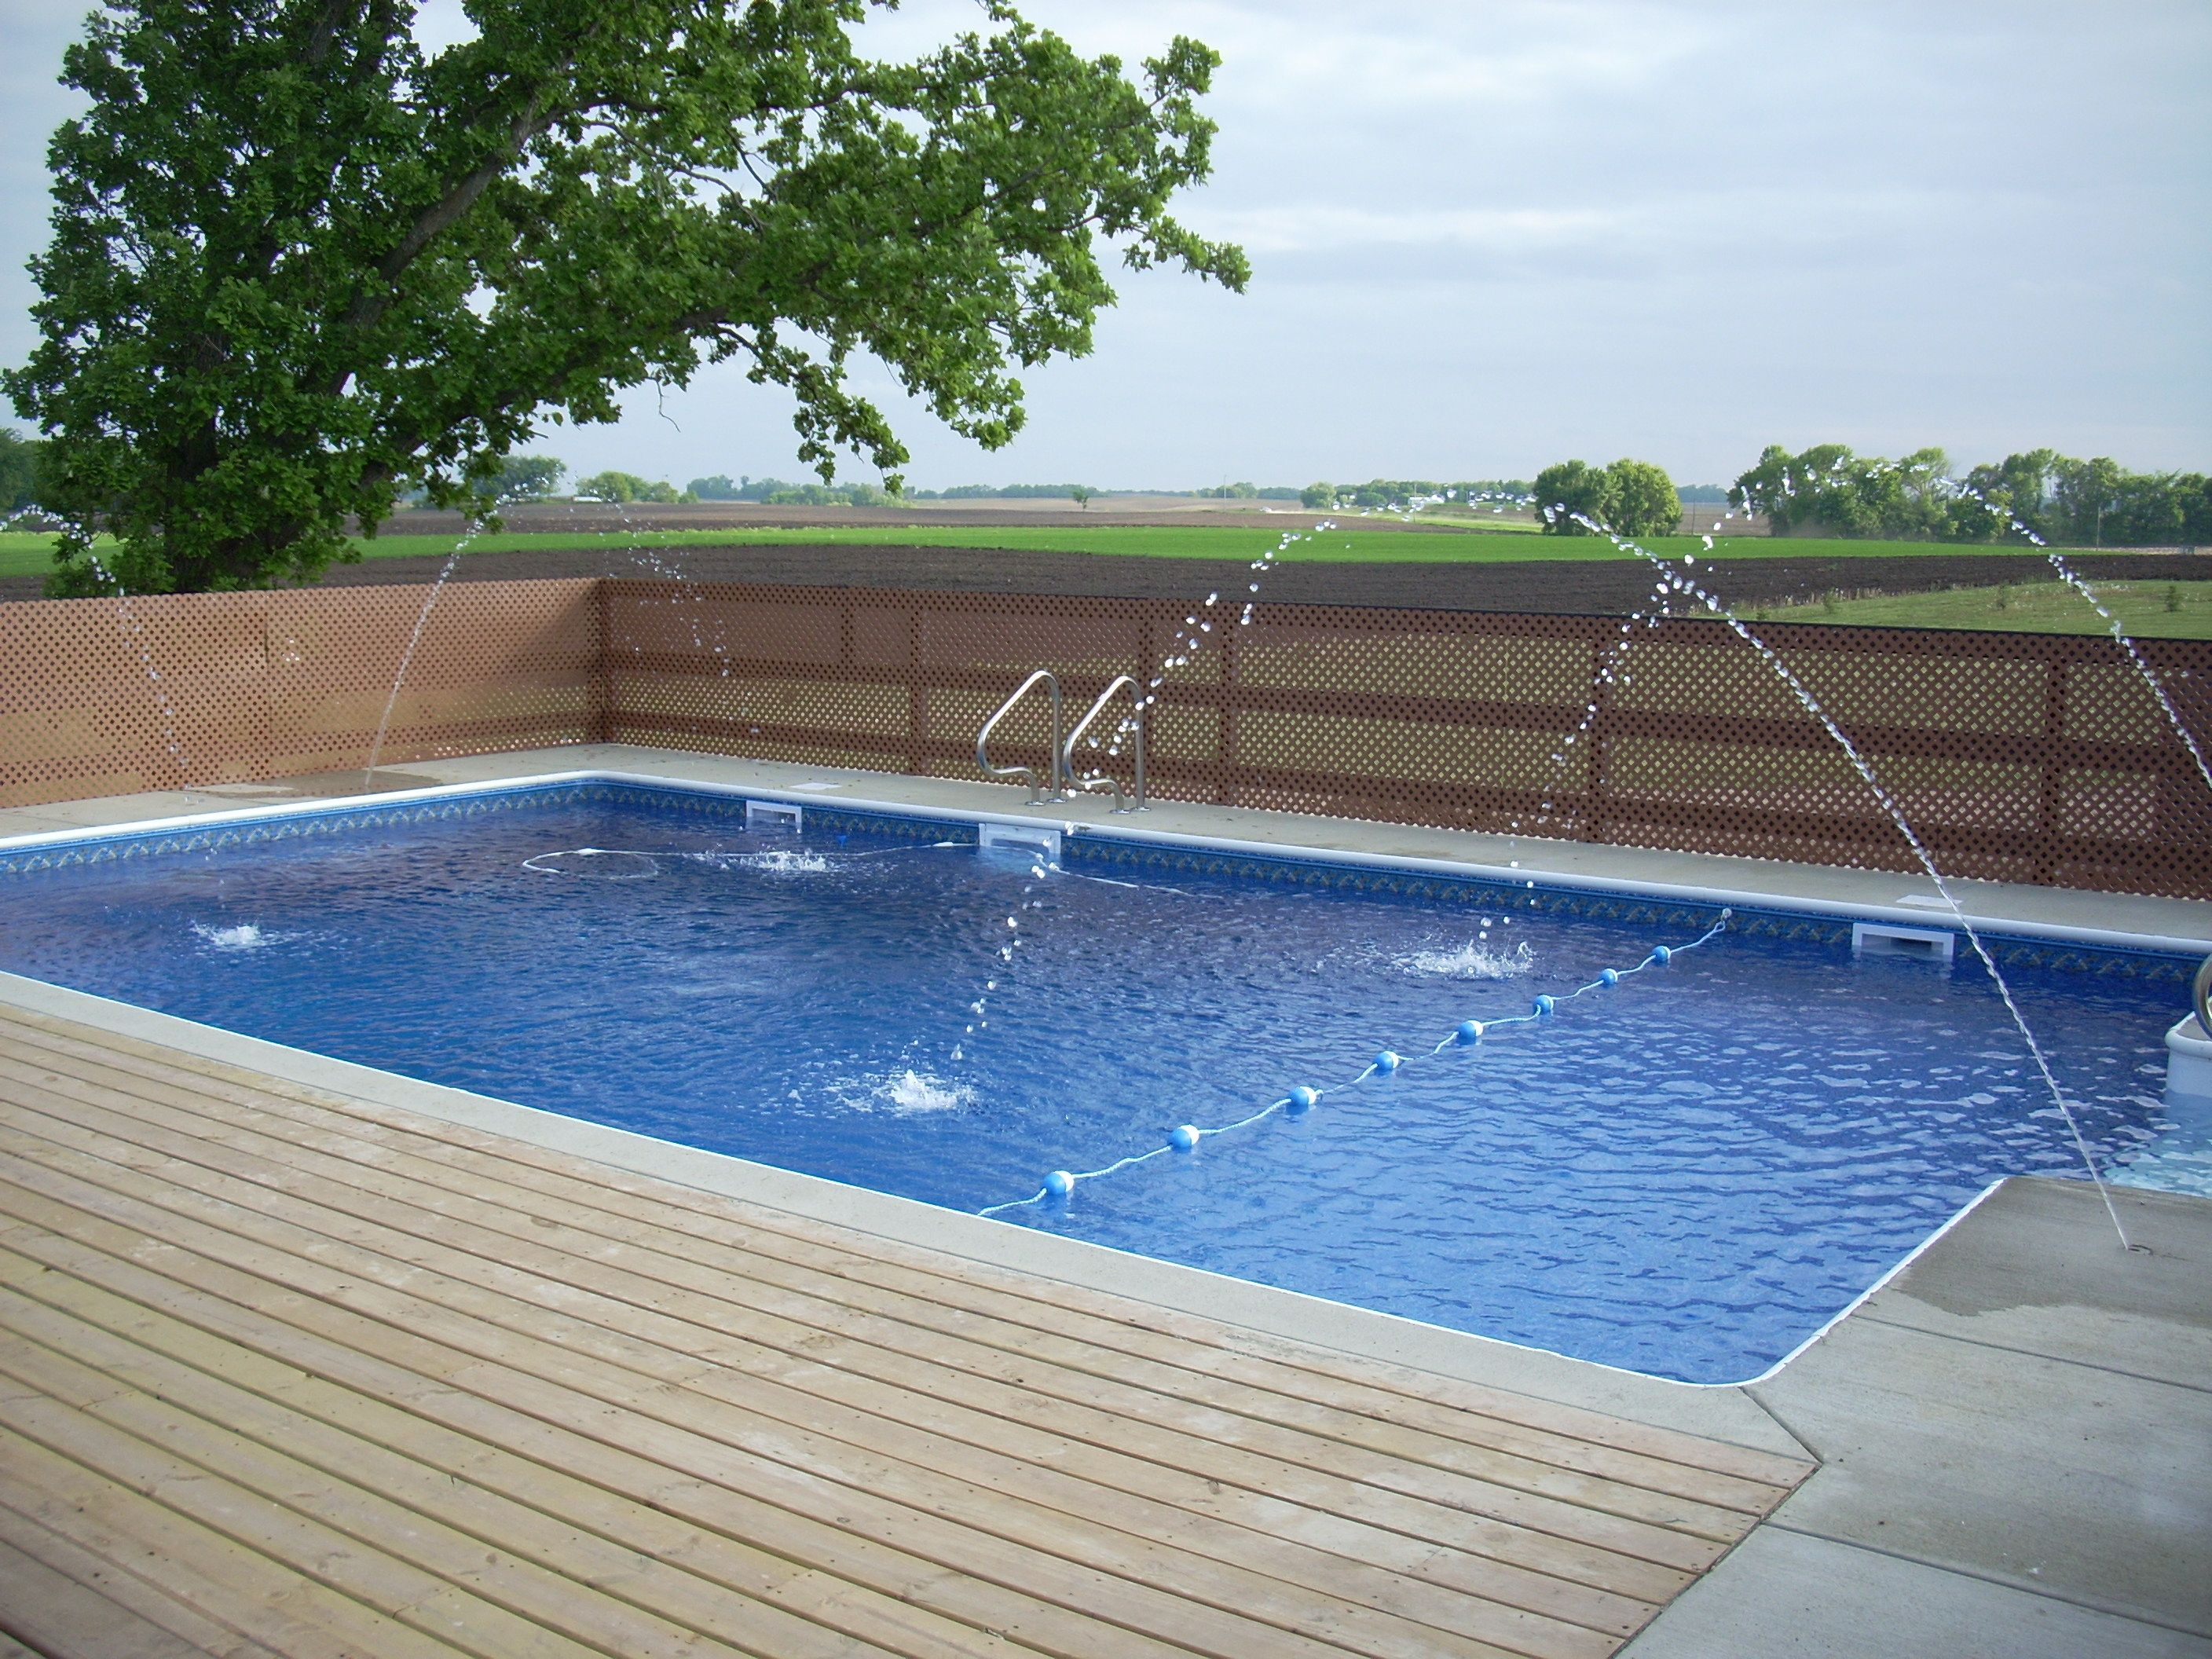 Inground swimming pool installed by tc pools when im older i want inground swimming pool installed by tc pools when im older i want to have solutioingenieria